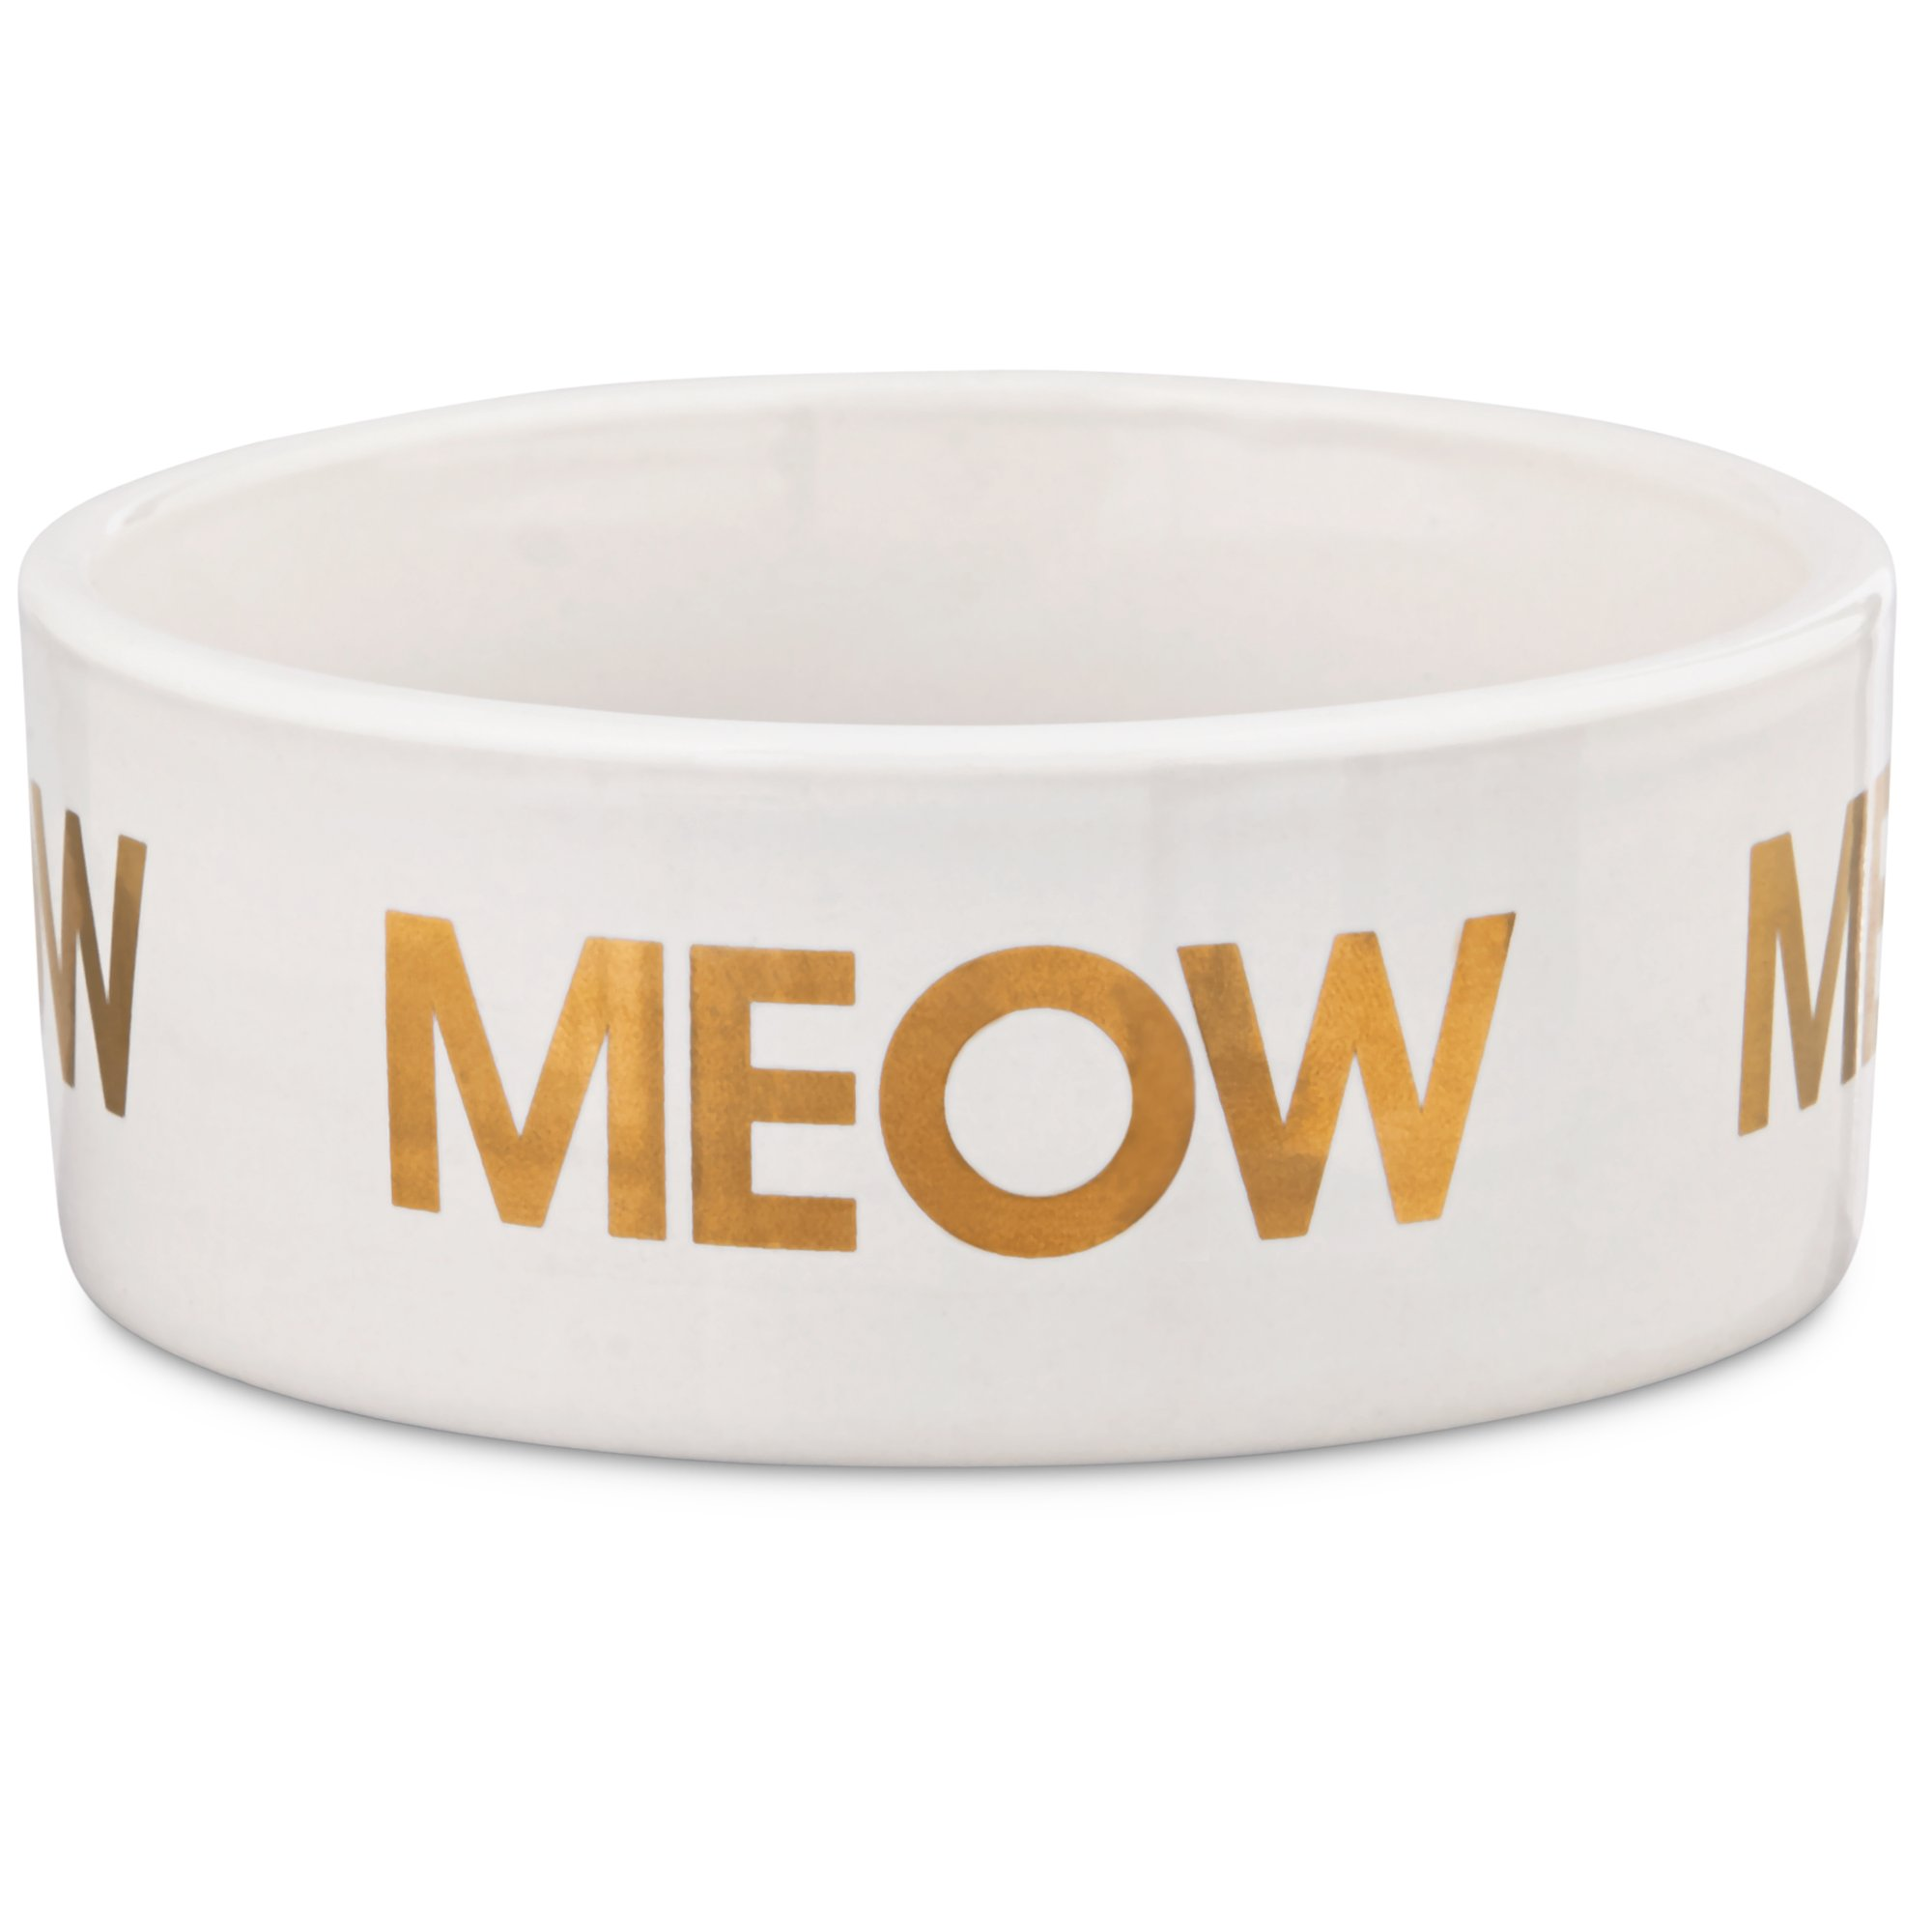 Harmony Meow Ceramic Cat Bowl Petco